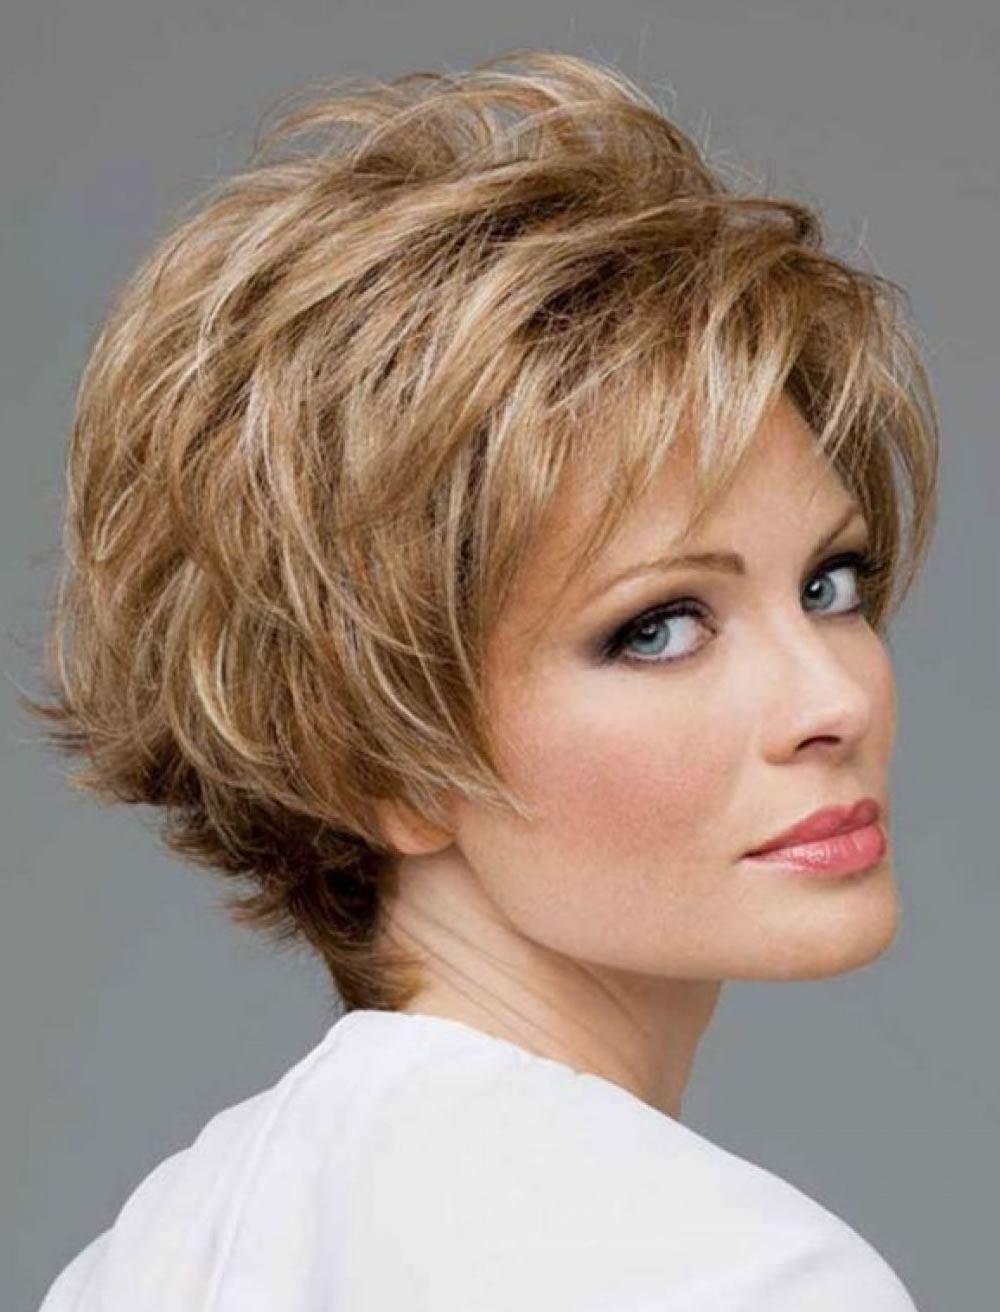 Dashing Short Haircut For 2018 Women Over 40 To 60 – Hairstyles With Short Hairstyle For Over 40 (Gallery 16 of 25)